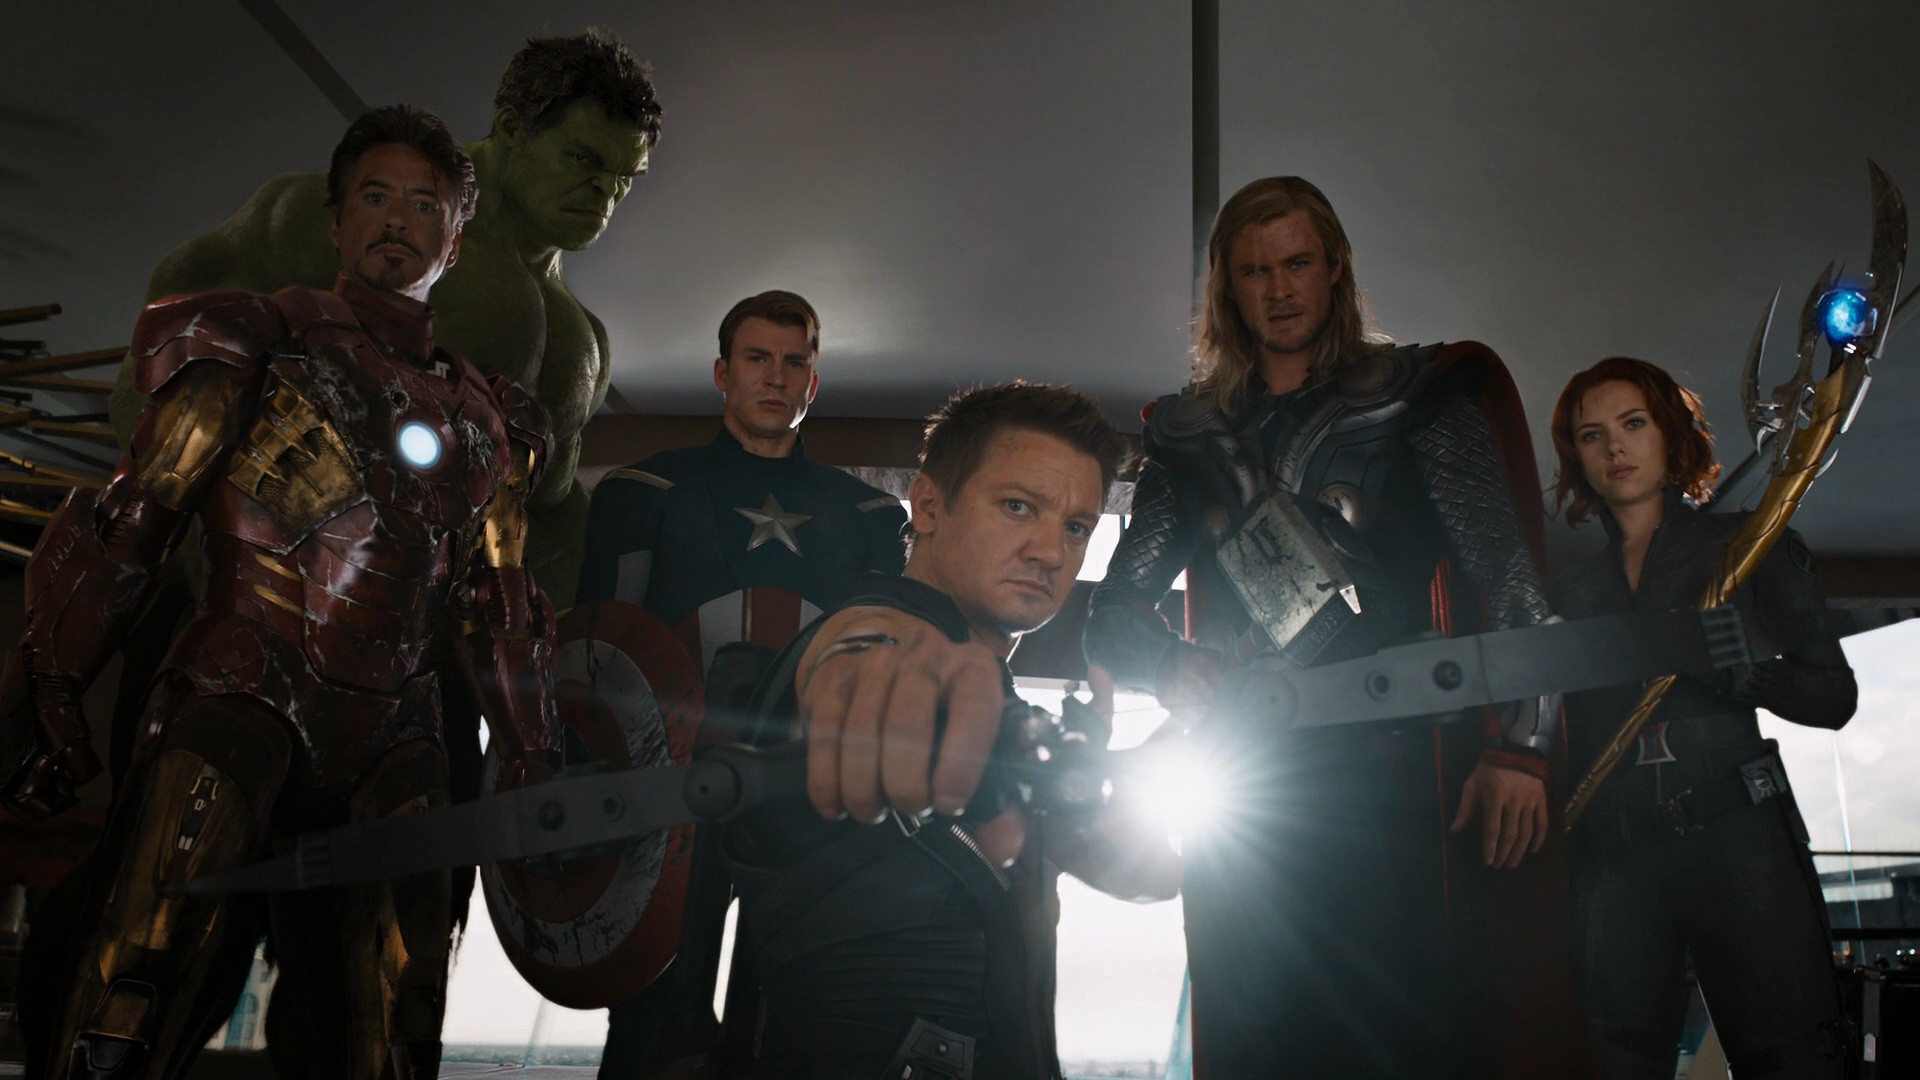 image - the avengers assembled | marvel cinematic universe wiki